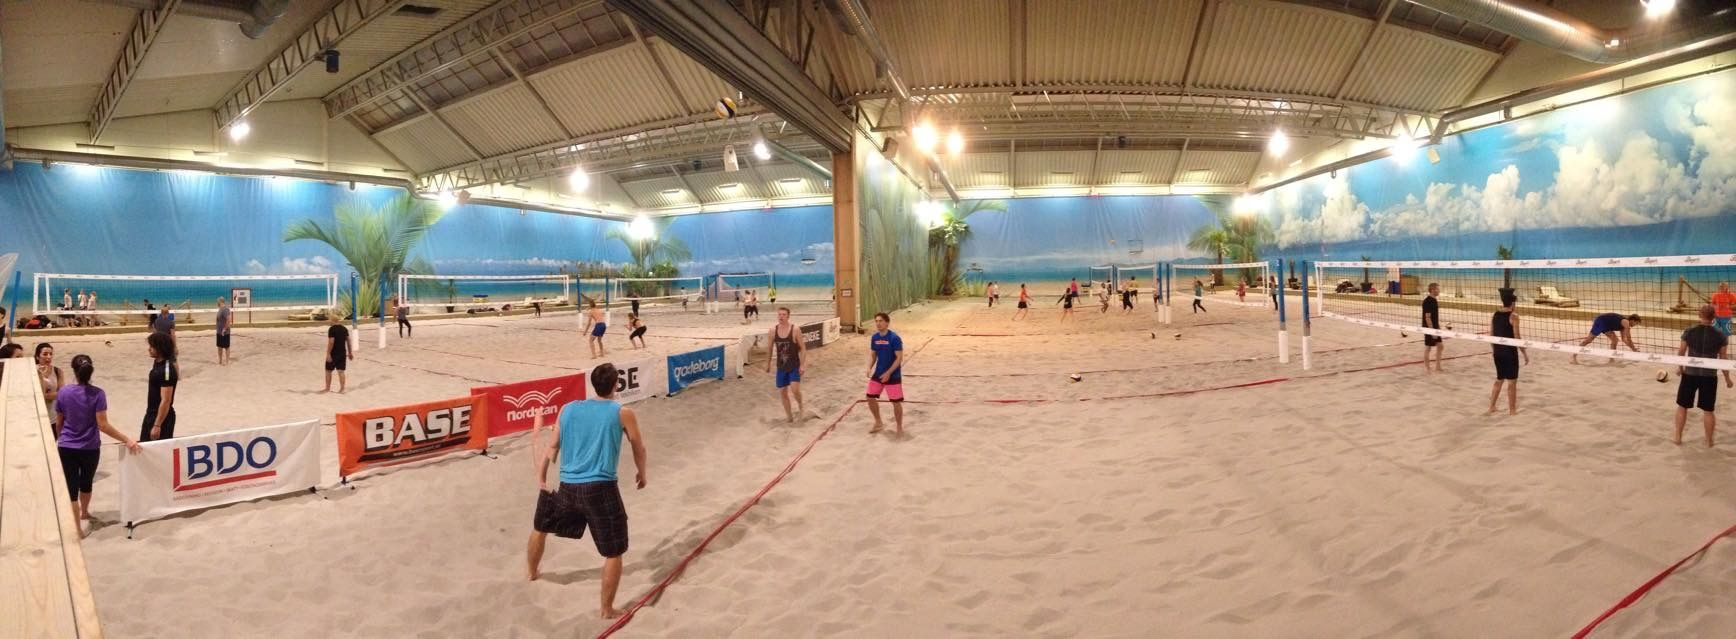 Premier Beach Volleyball Court Google Search Beach Volleyball Court Indoor Beach Beach Volleyball